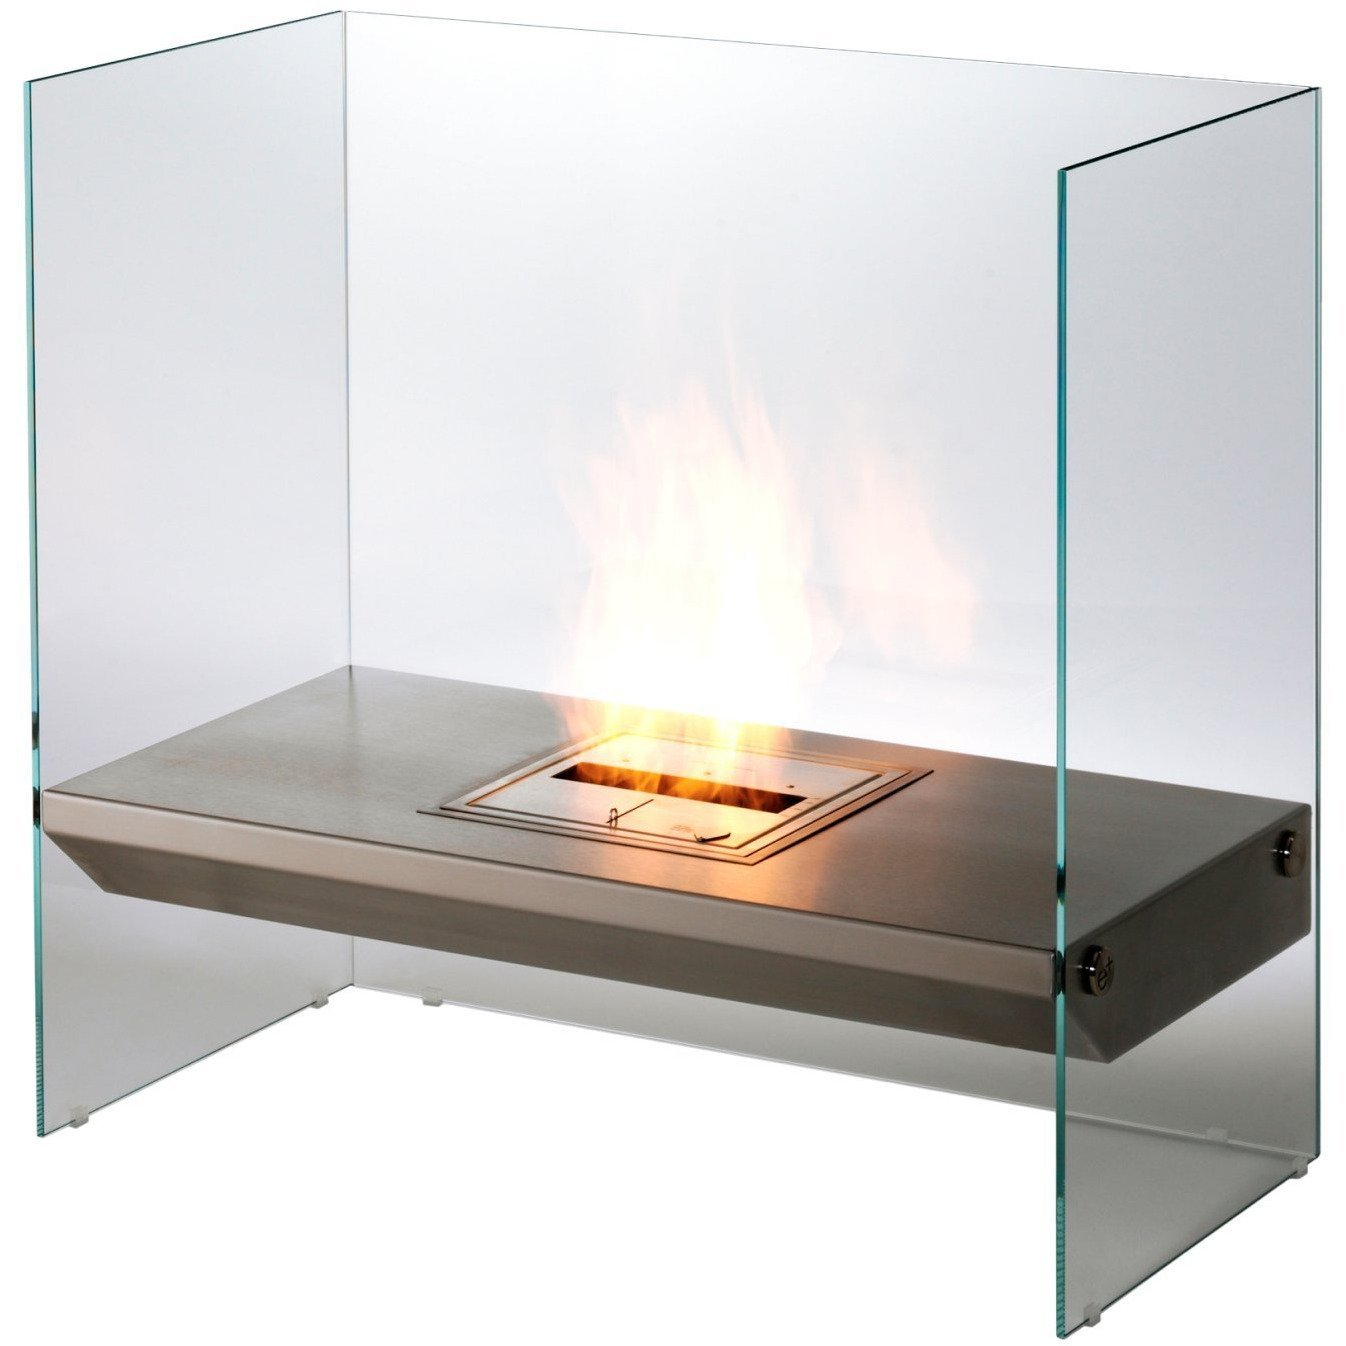 Igloo Ethanol Designer Fireplace - Outdoor Living Essentials